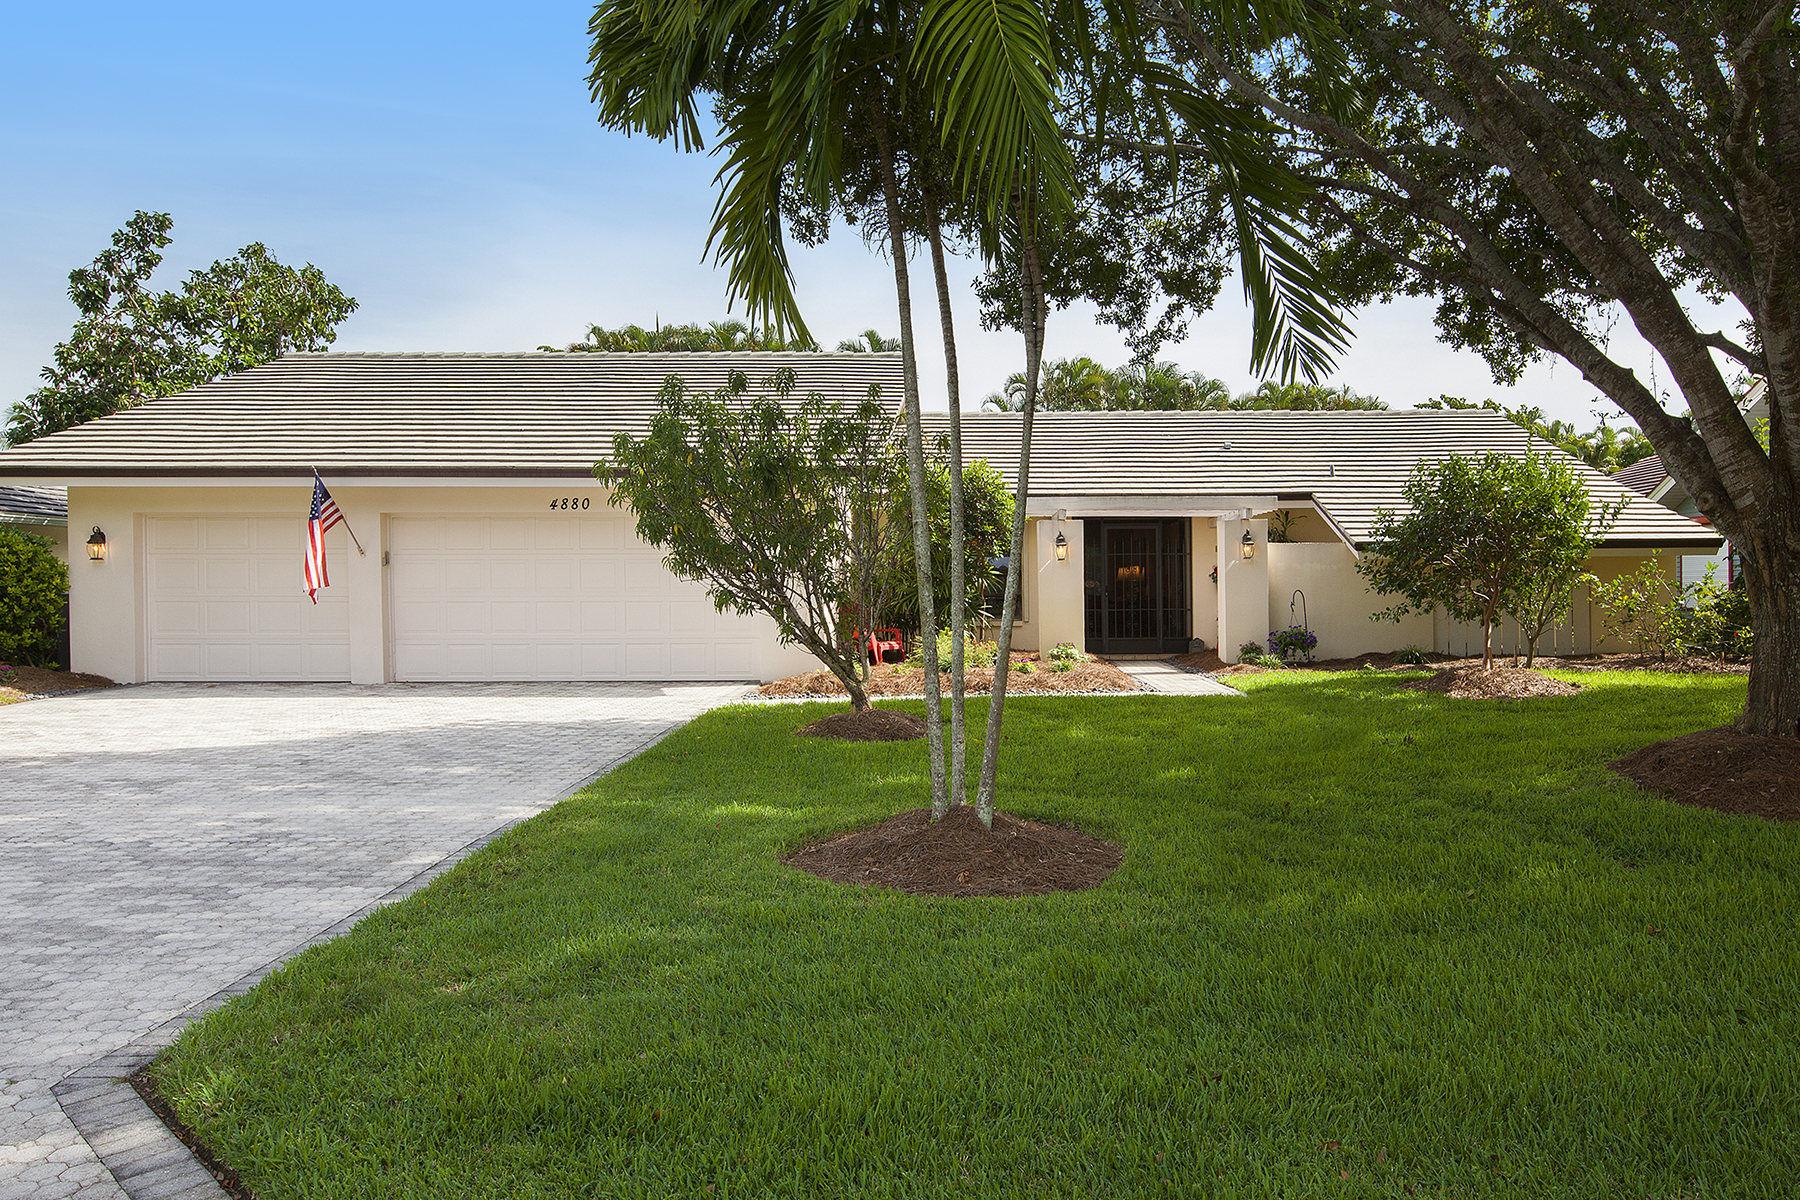 Single Family Home for Sale at Naples 4880 Whispering Pine Way Naples, Florida, 34103 United States